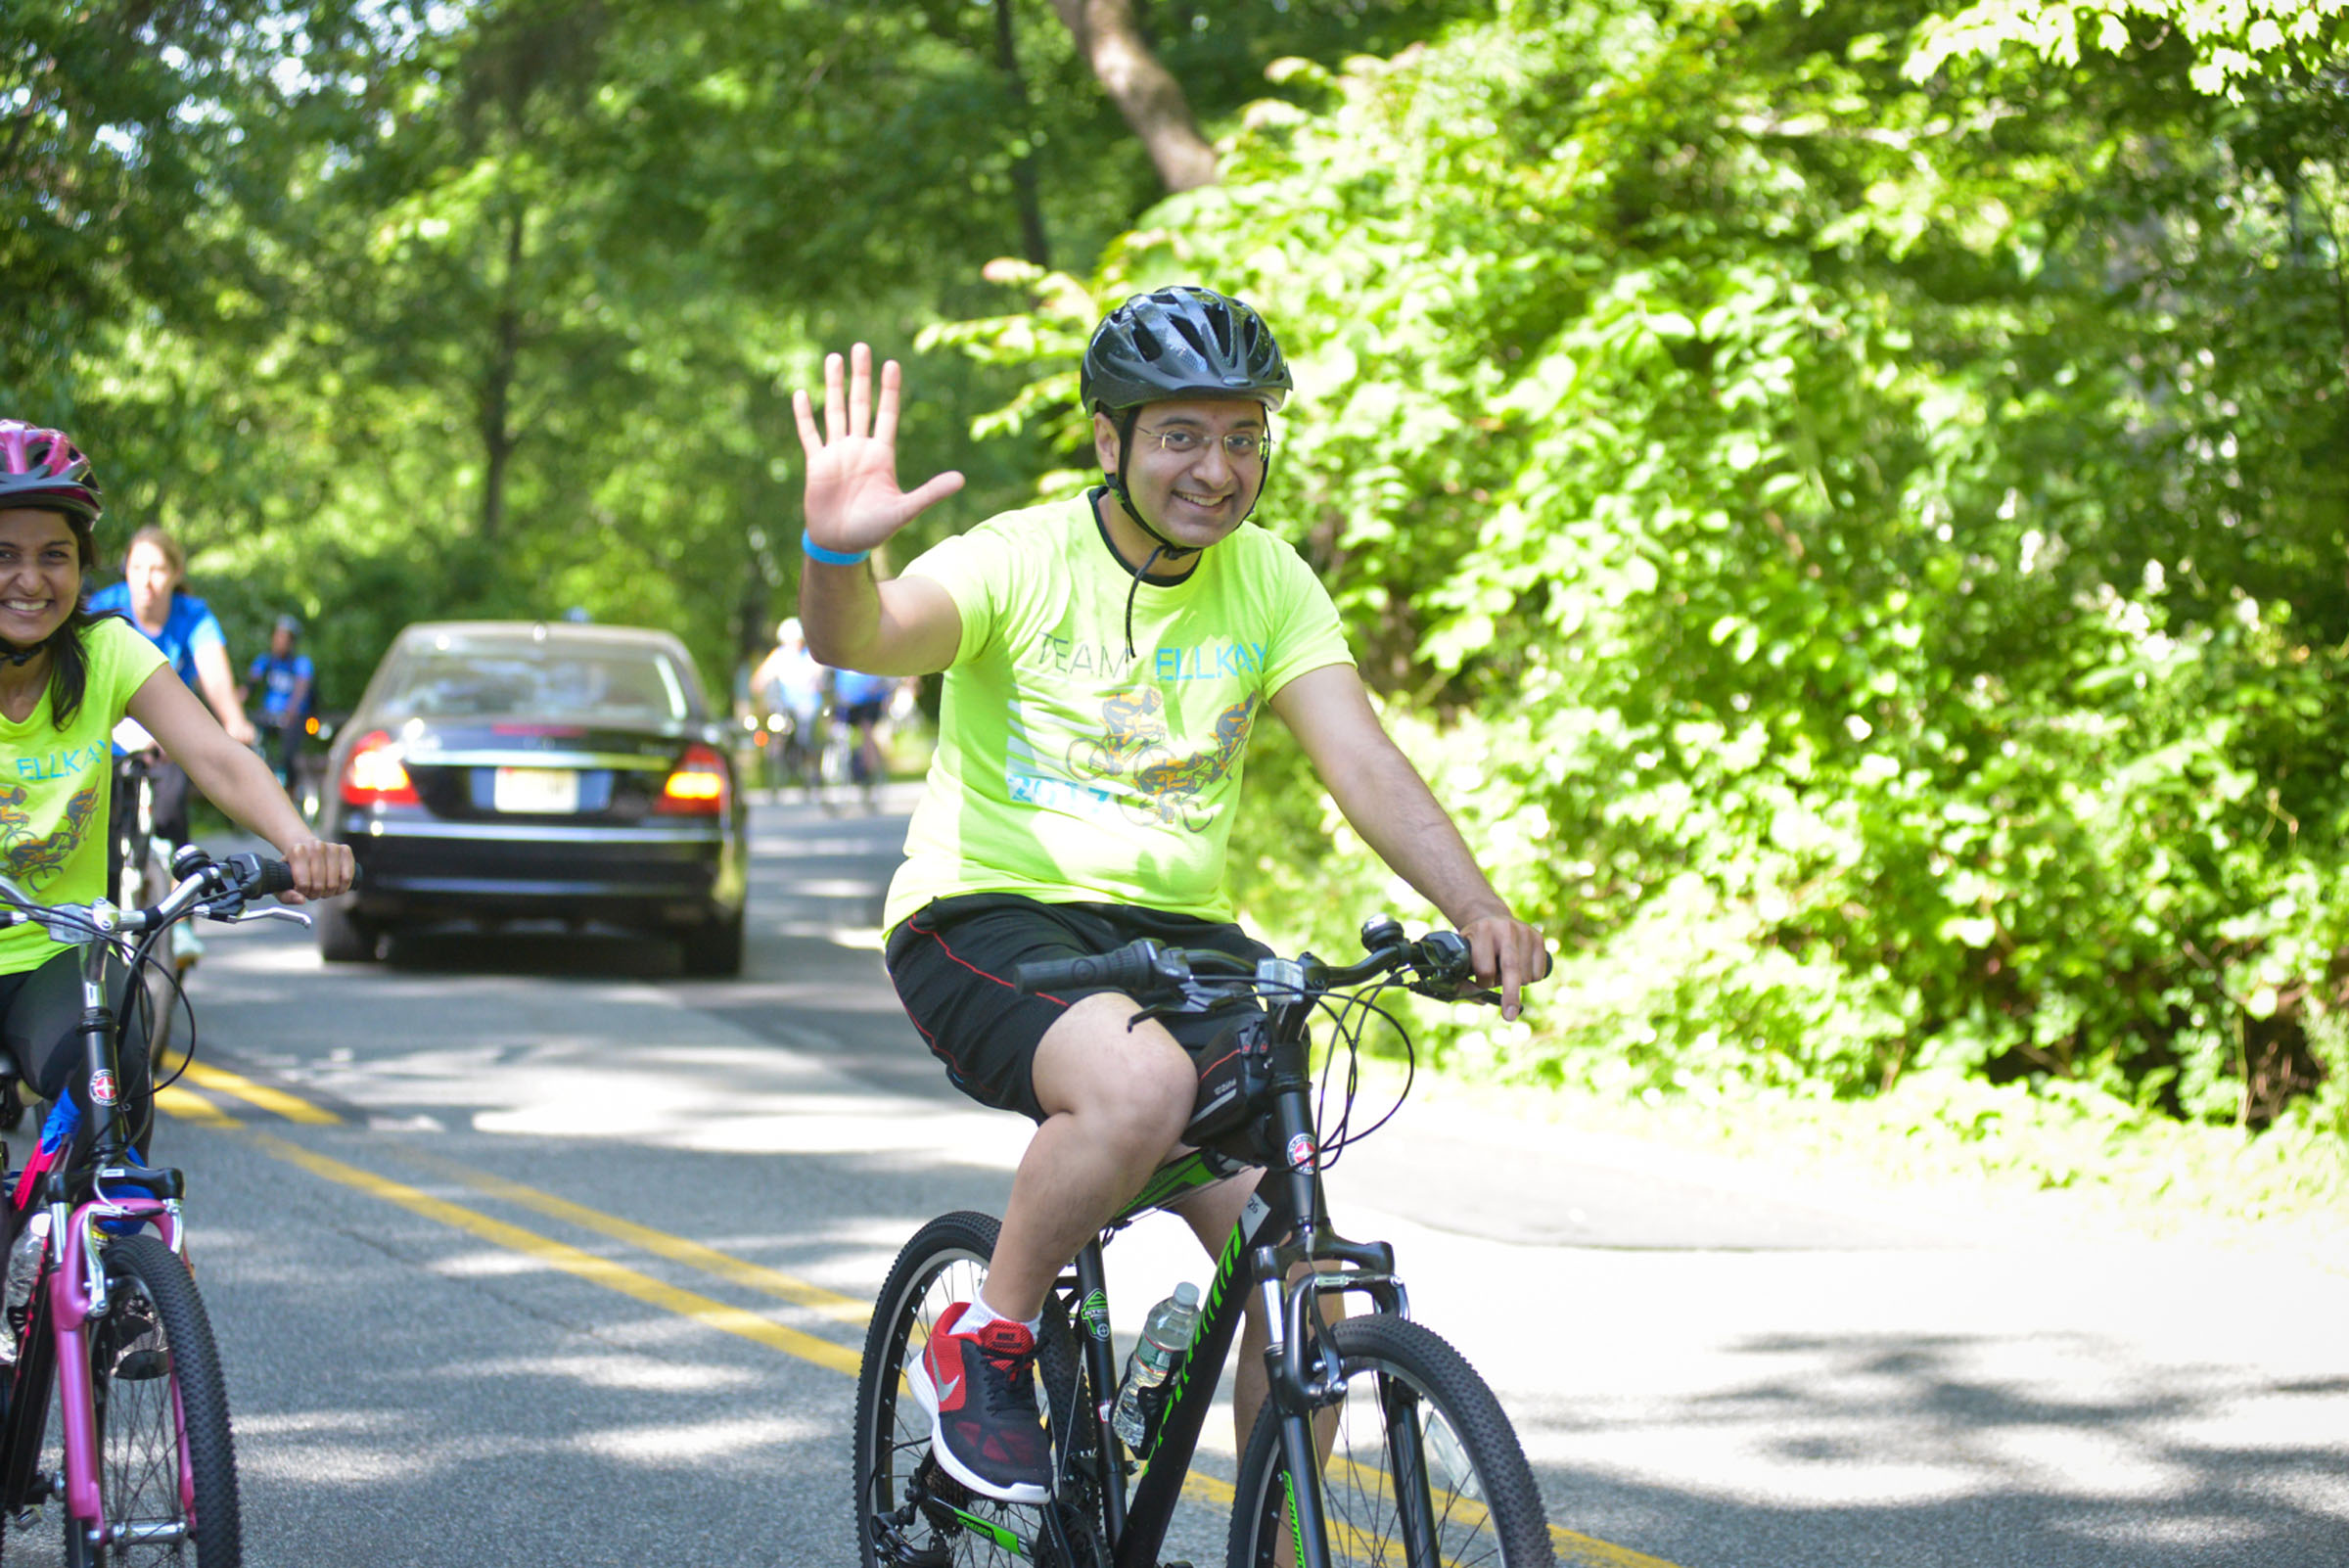 2017-06-04 GTD4A Charity Bike Ride - BCC - Paramus NJ-1962.jpg